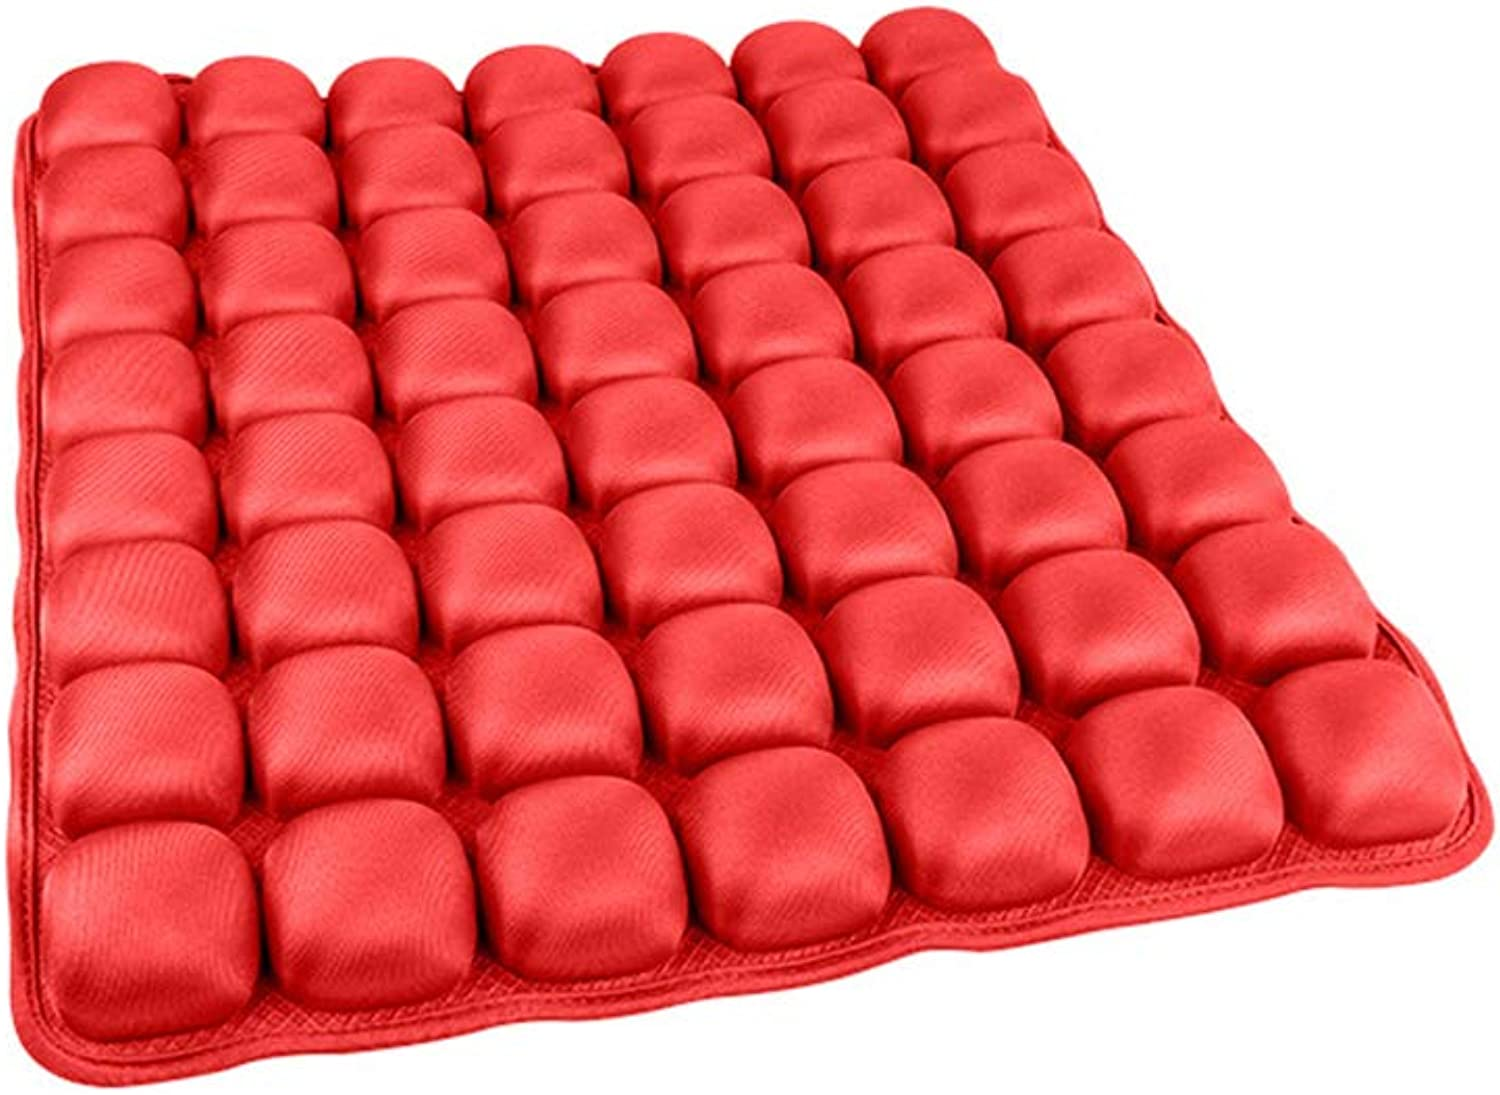 Air Cushion, Car Inflatable Cushion, Office Seat Cushion, 3D Ventilation, Pressure Relief, Soft Comfortable, Suitable for Home Office Car,Red